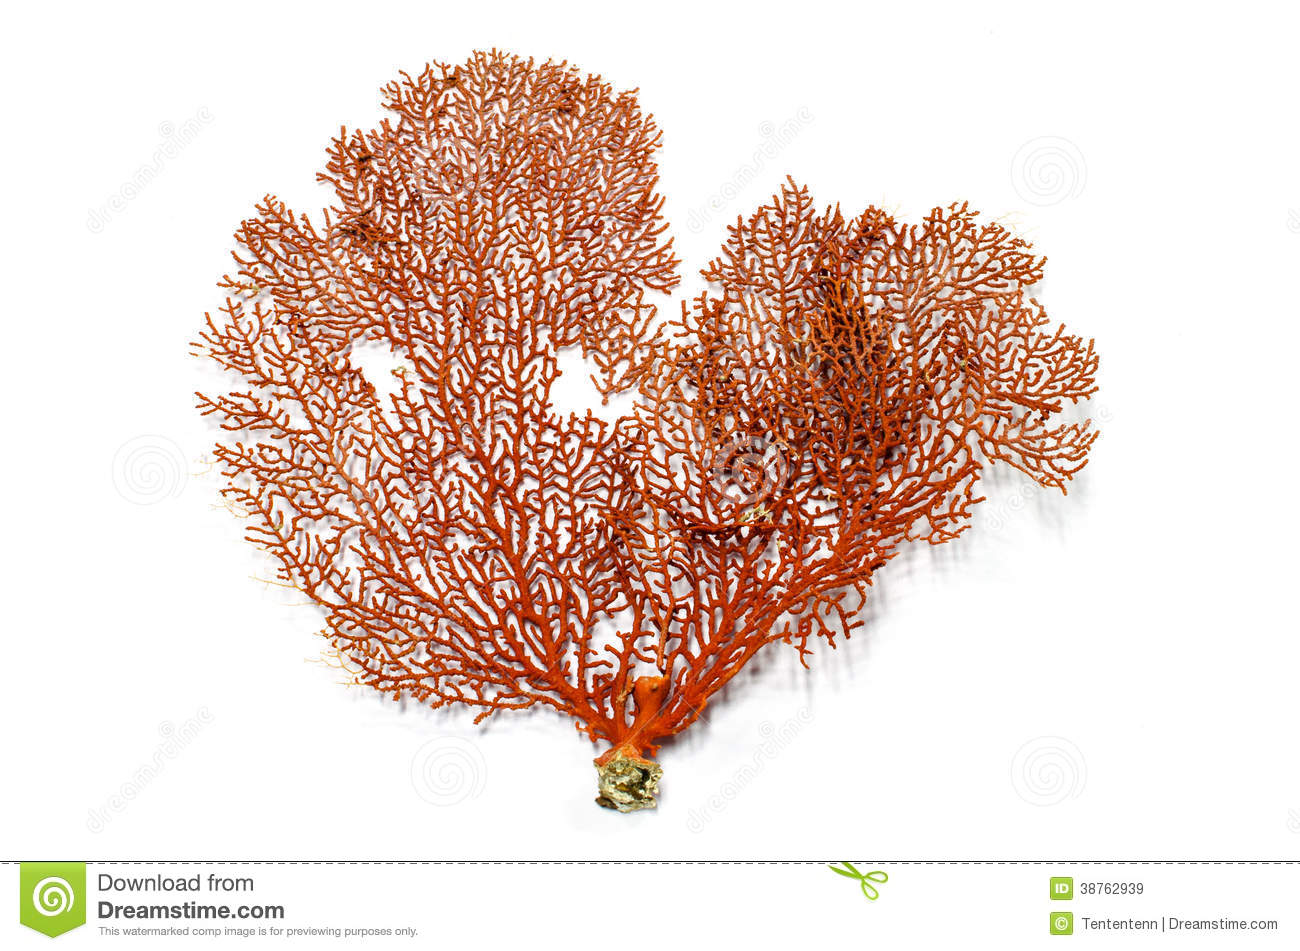 Red Gorgonian or red sea fan coral